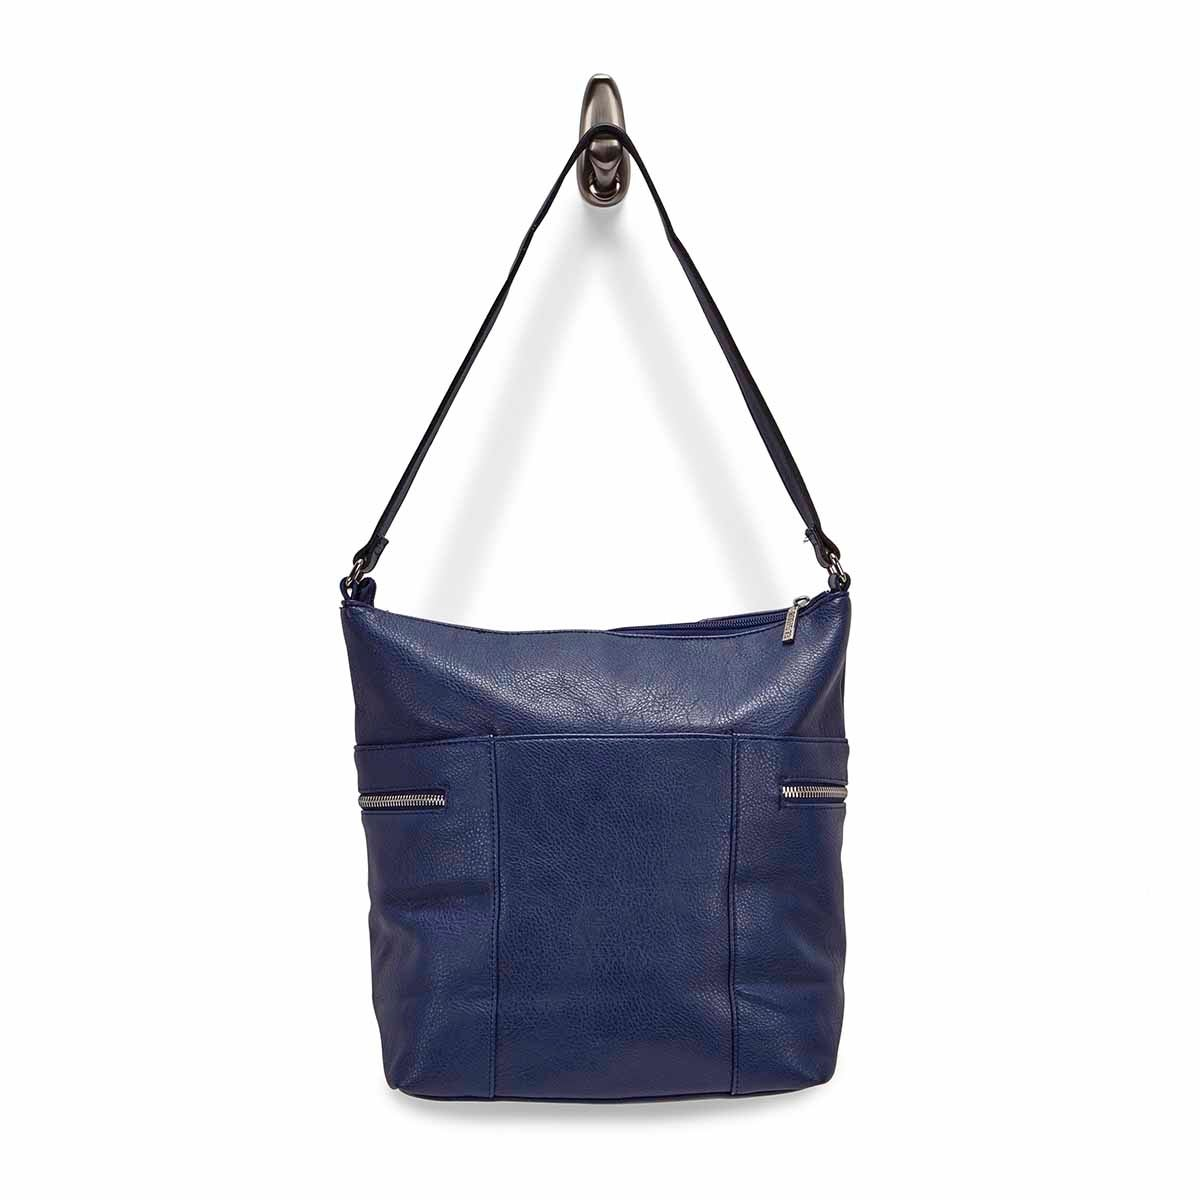 Lds Roots73 navy north/south hobo bag